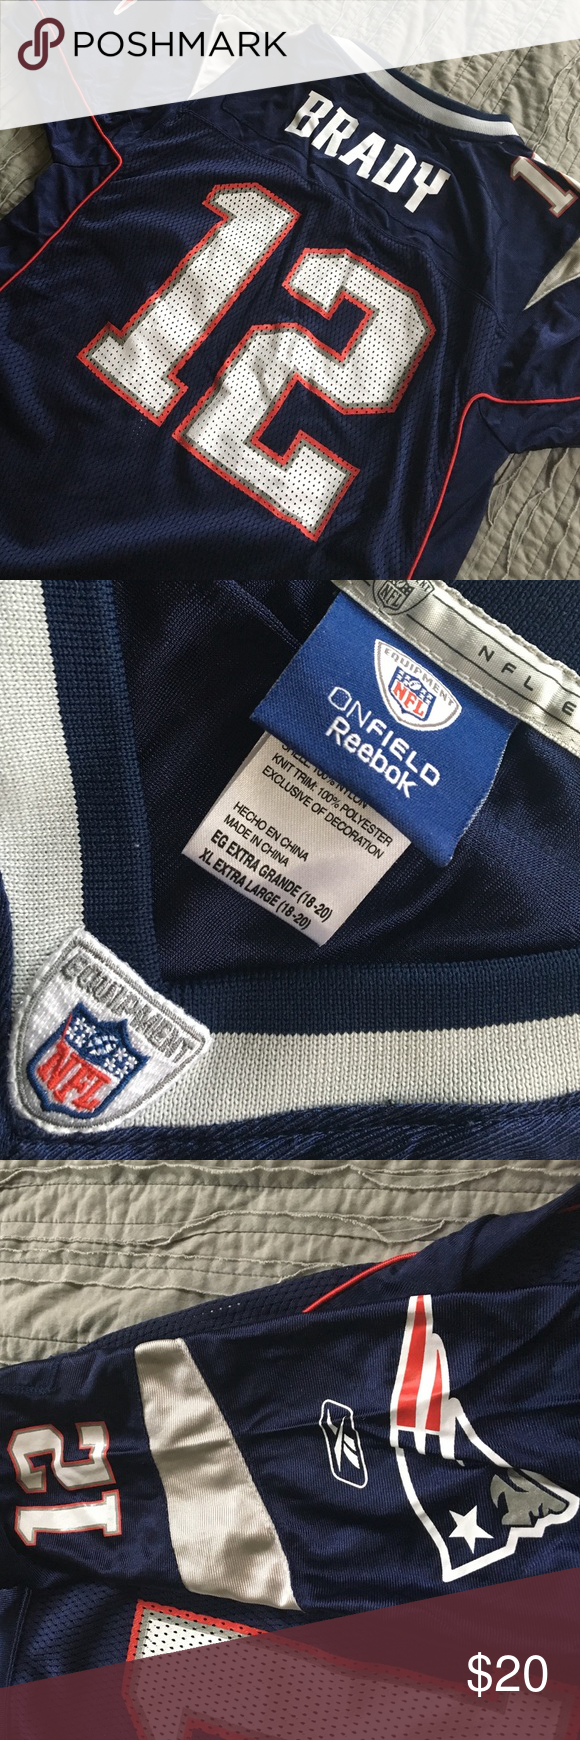 New England Patriots jersey Tom Brady xl 18-20 New England Patriots extra-large (youth) jersey size 18-20. Would also fit a women's medium to large or a men's small. Go Pats! Check out my other listings for Boston/New England sports teams apparel! Reebok Shirts & Tops Tees - Short Sleeve